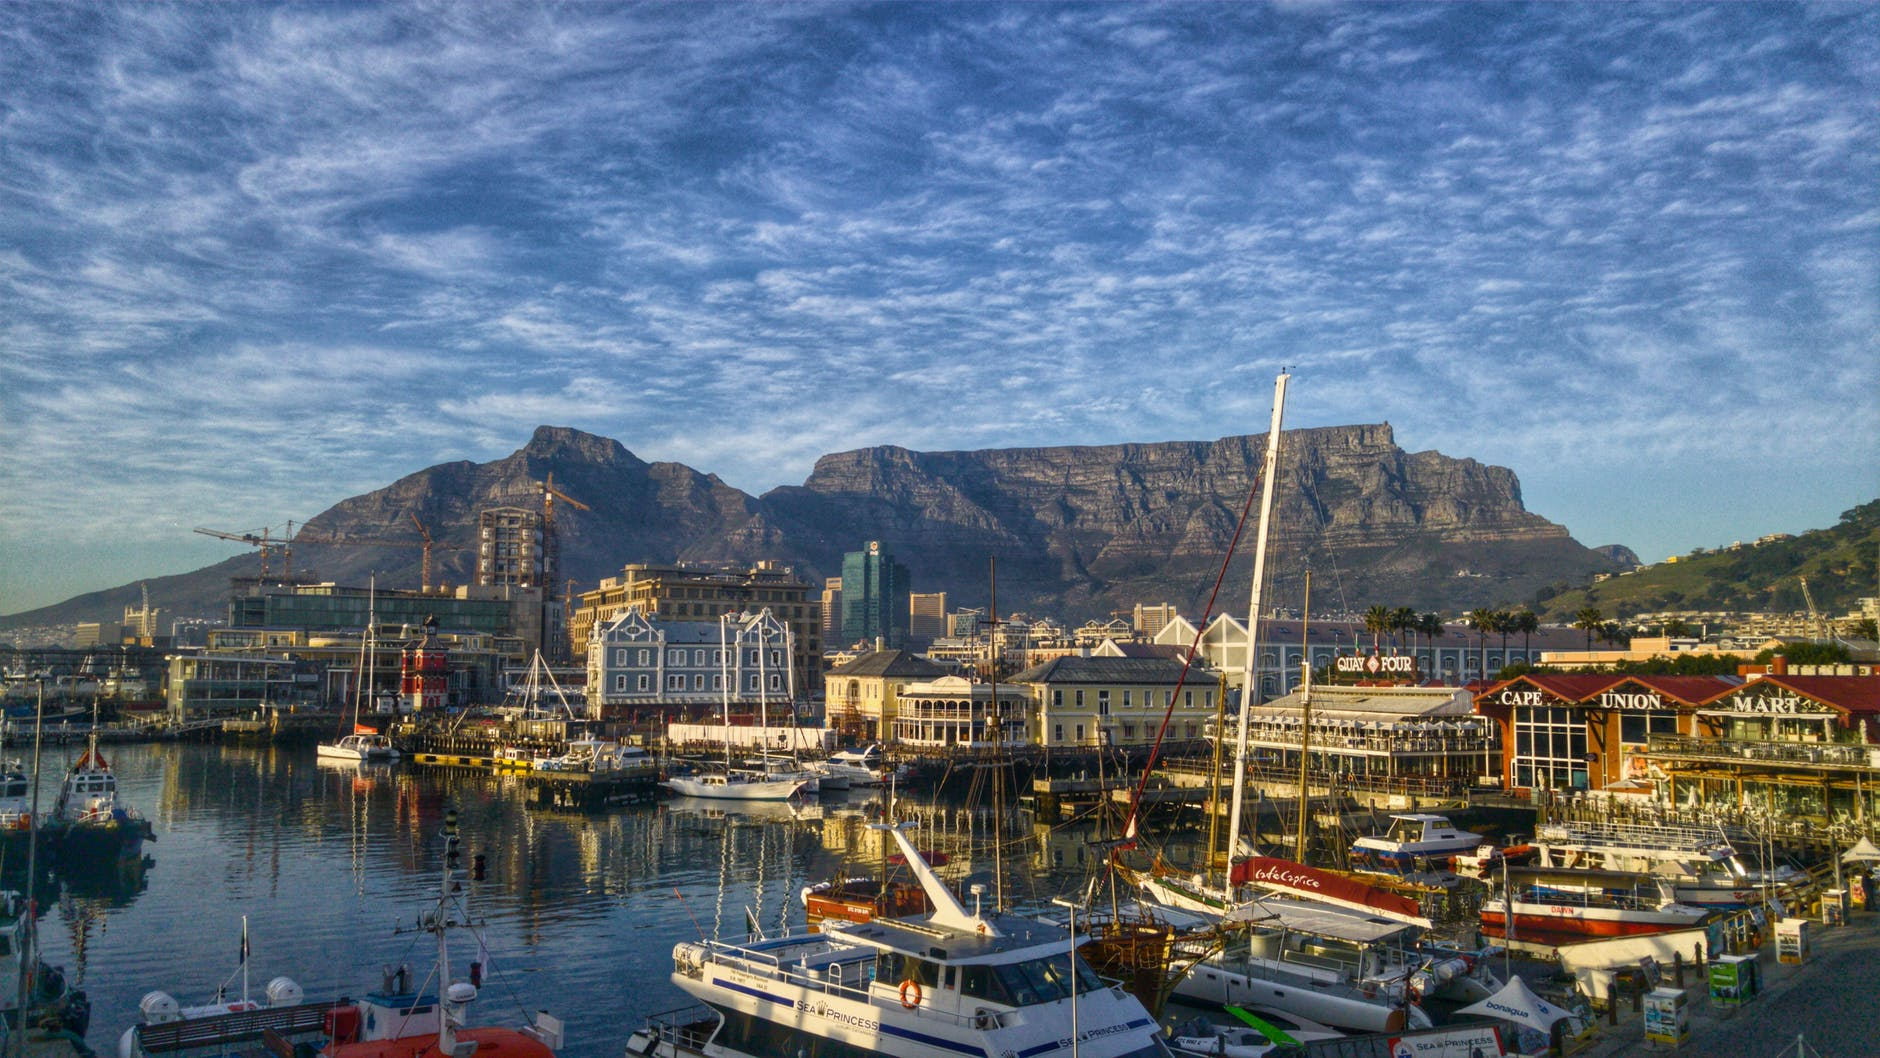 South Africa INTERNATIONAL HONEYMOON DESTINATIONS ROMANTIC VACATIONS ON A BUDGET